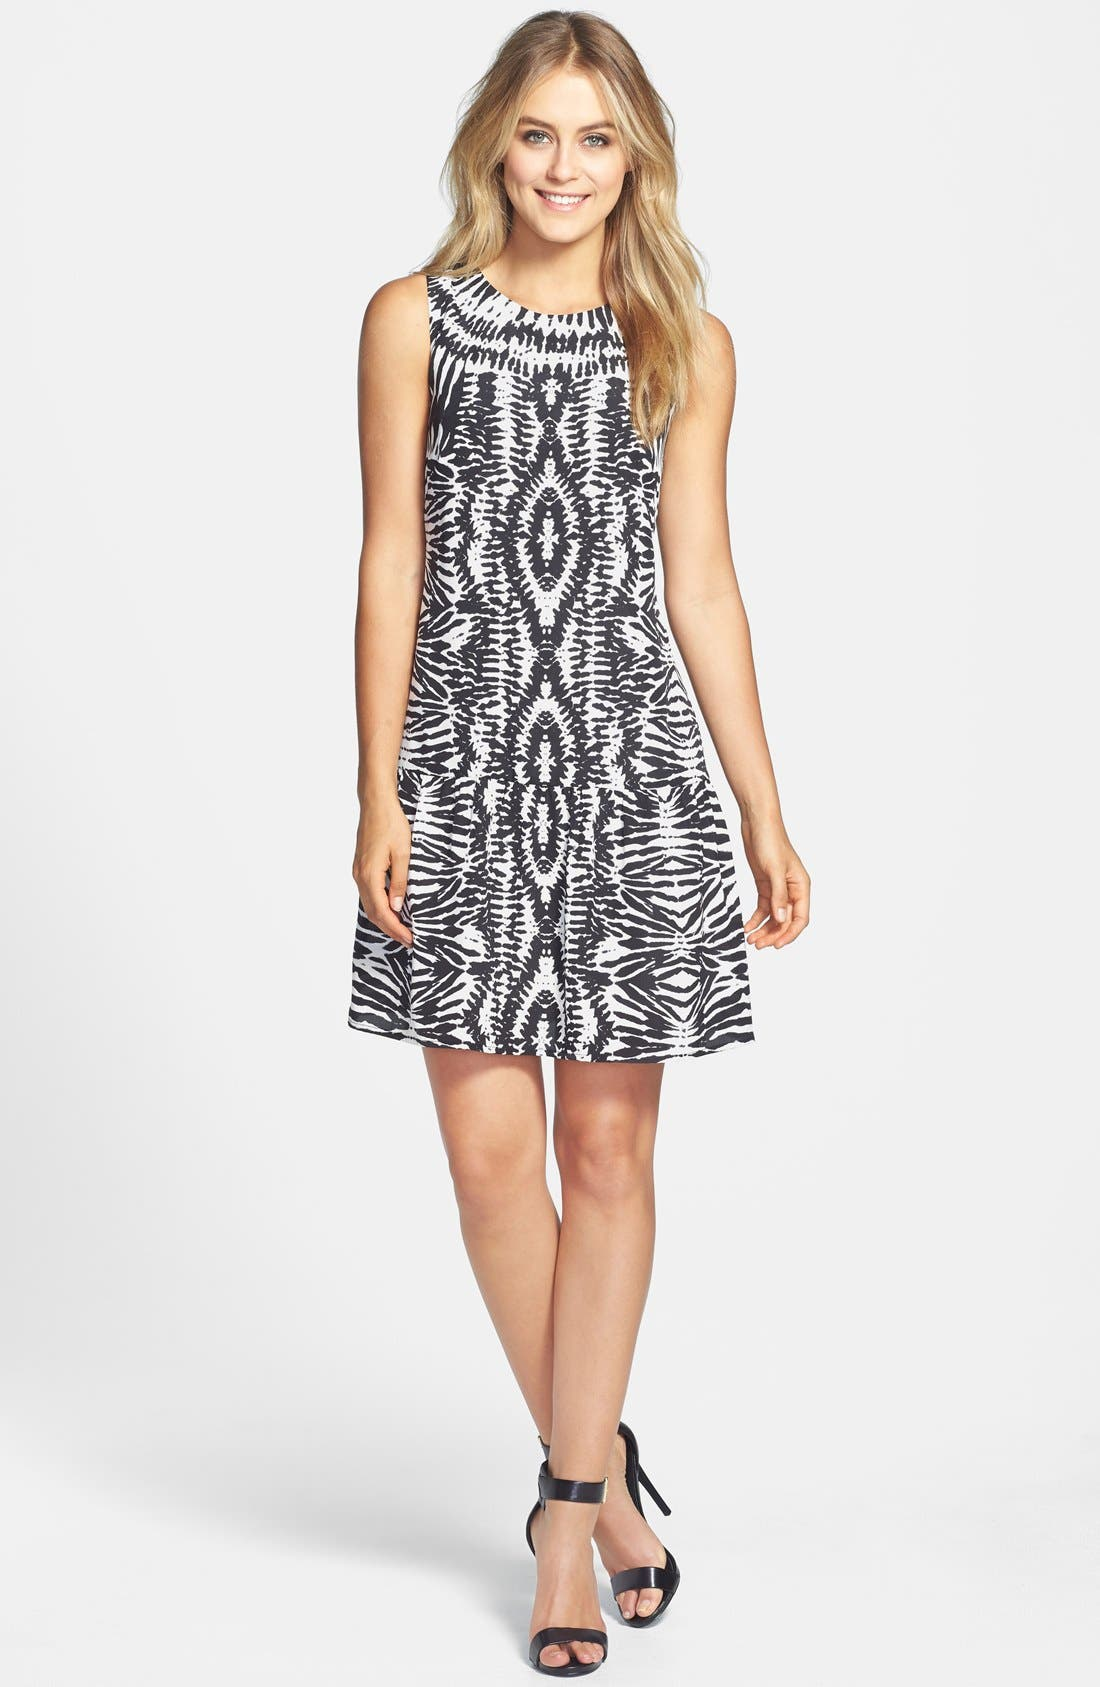 Main Image - Vince Camuto 'Tribal Impressions' Sleeveless Dress